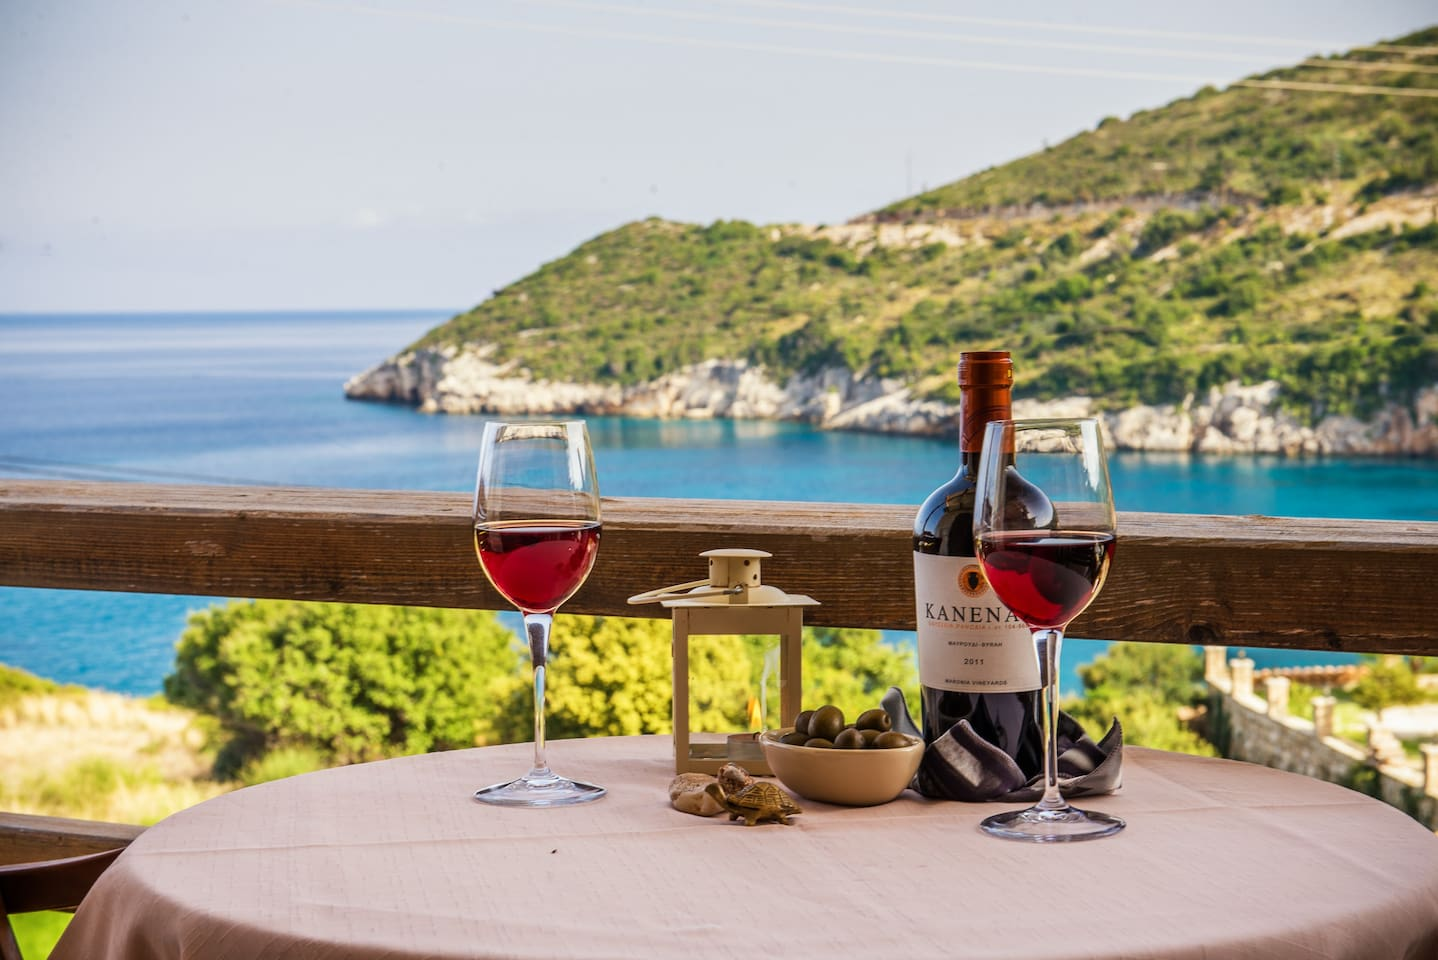 Your balcony! greek wine, sun and the clear blue ionian sea!